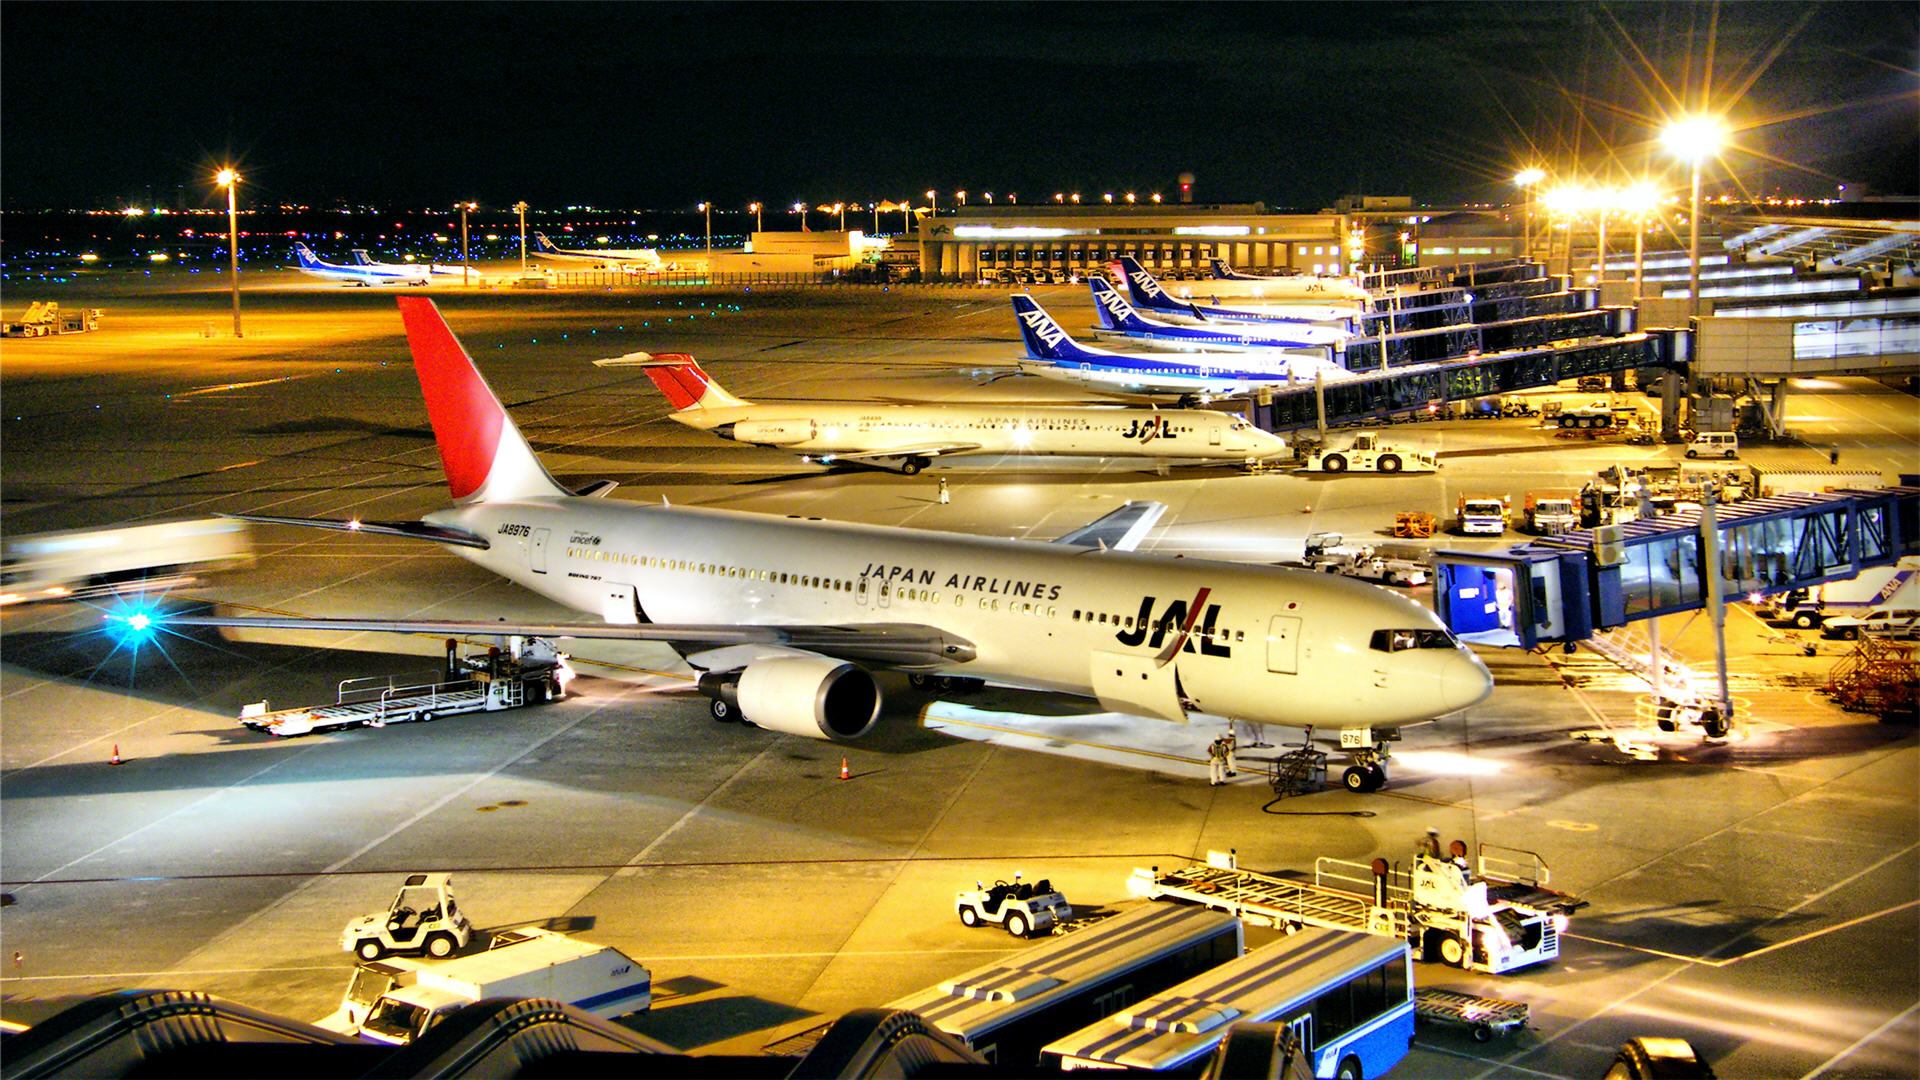 Heathrow-Airport-Picture-HD-1920x1080-wallpaper-wpc9205912